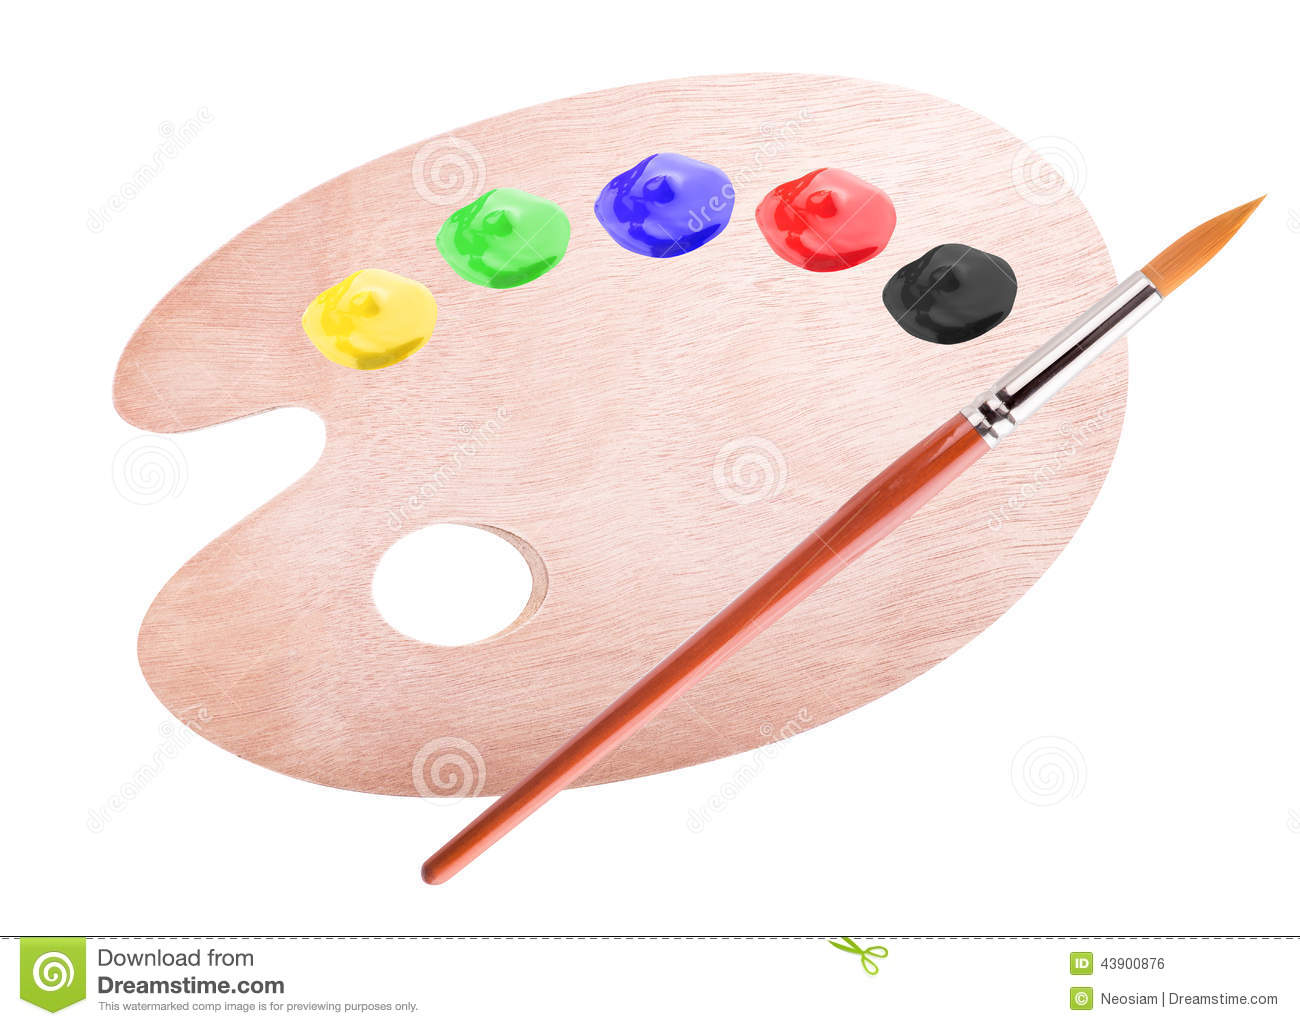 Paint Palette And Brush Stock Photo - Image: 43900876